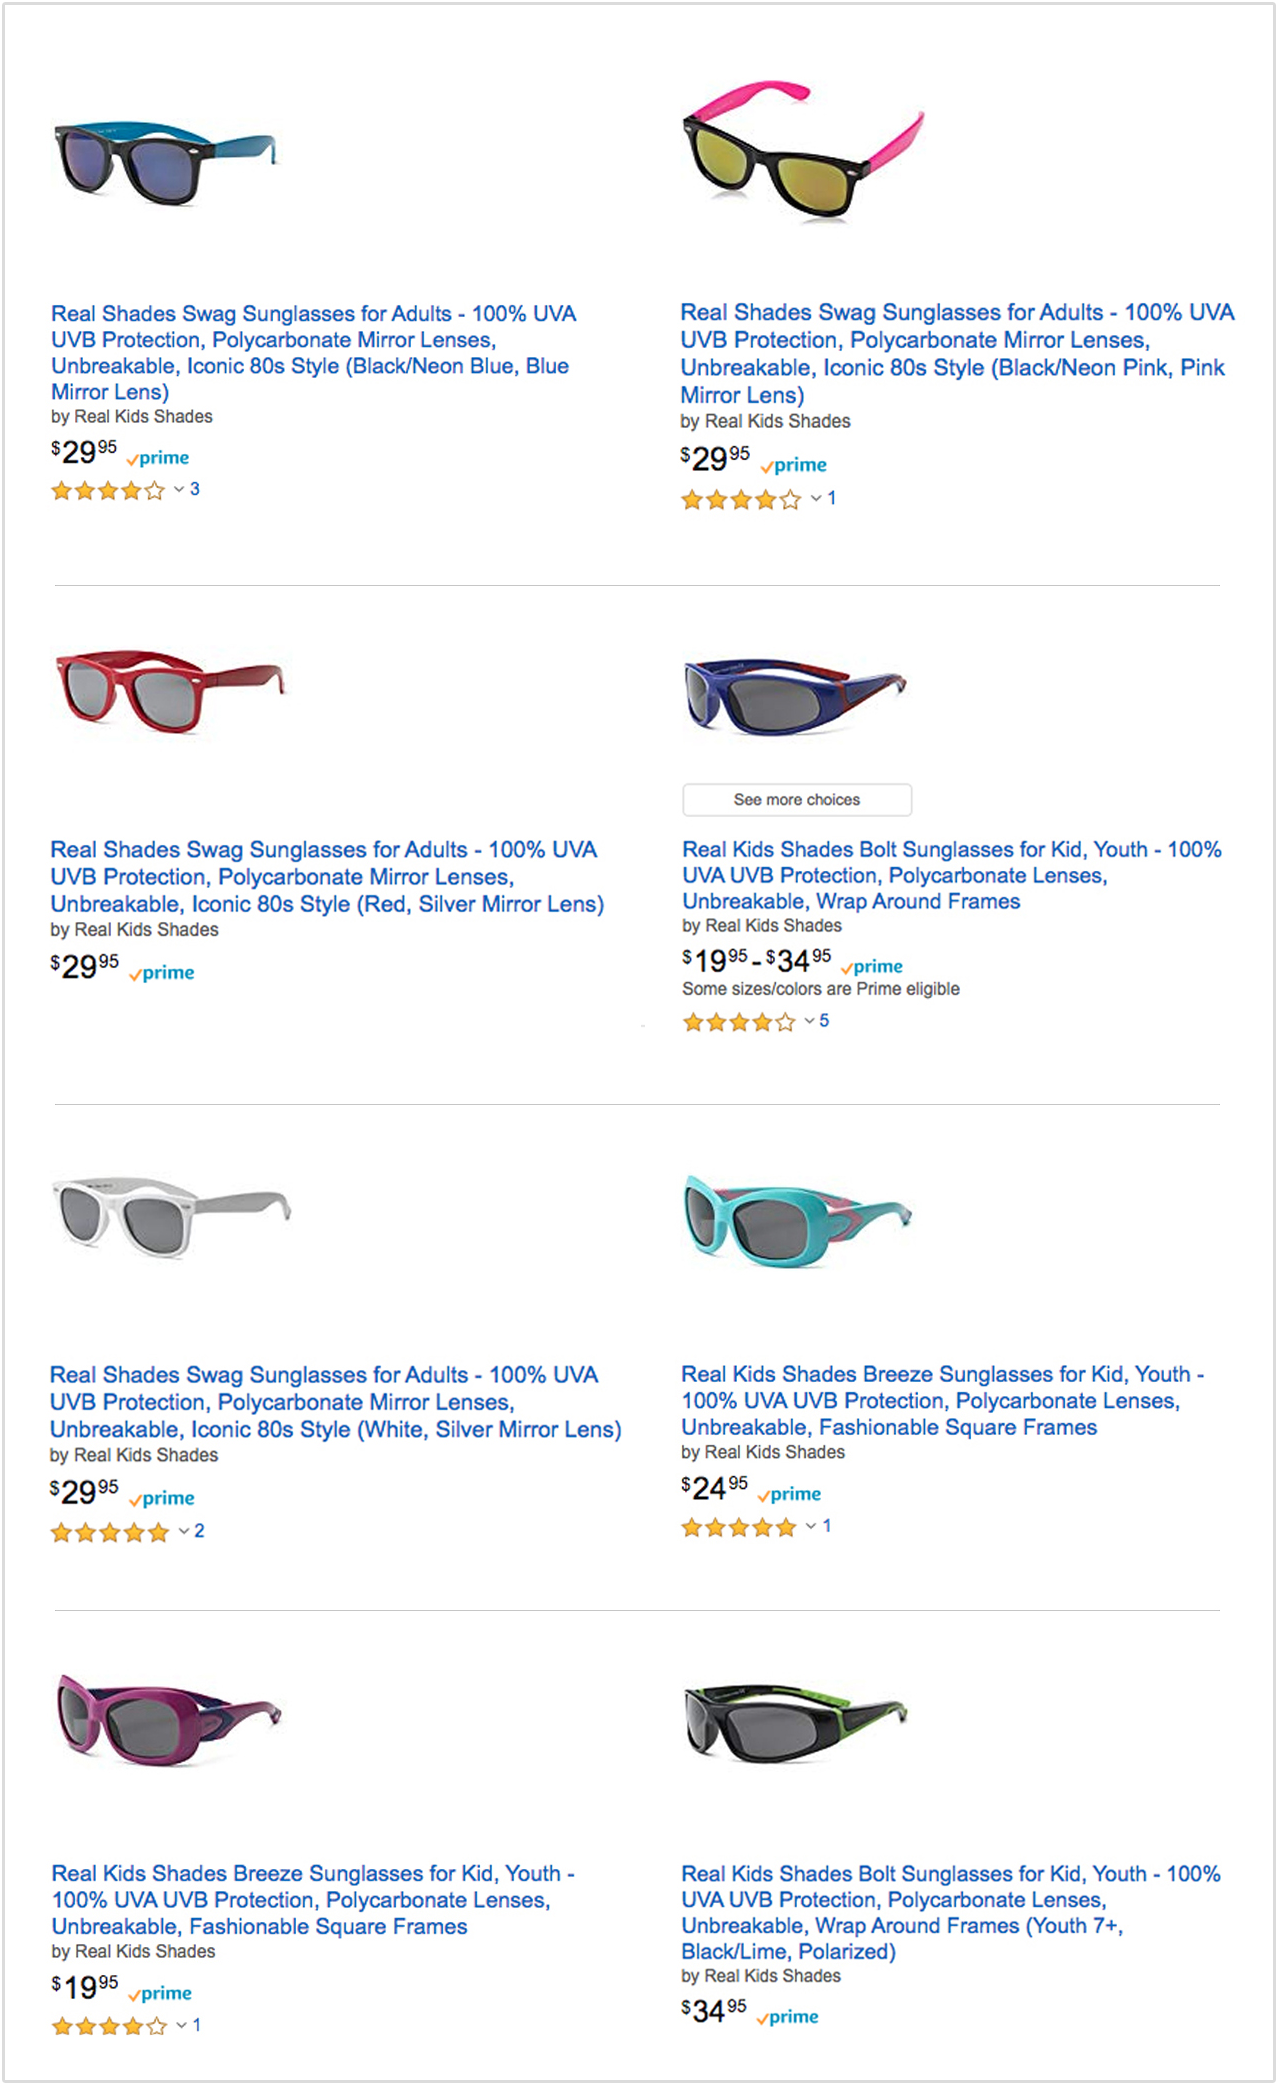 Screenshot of Real Shades Amazon product listings